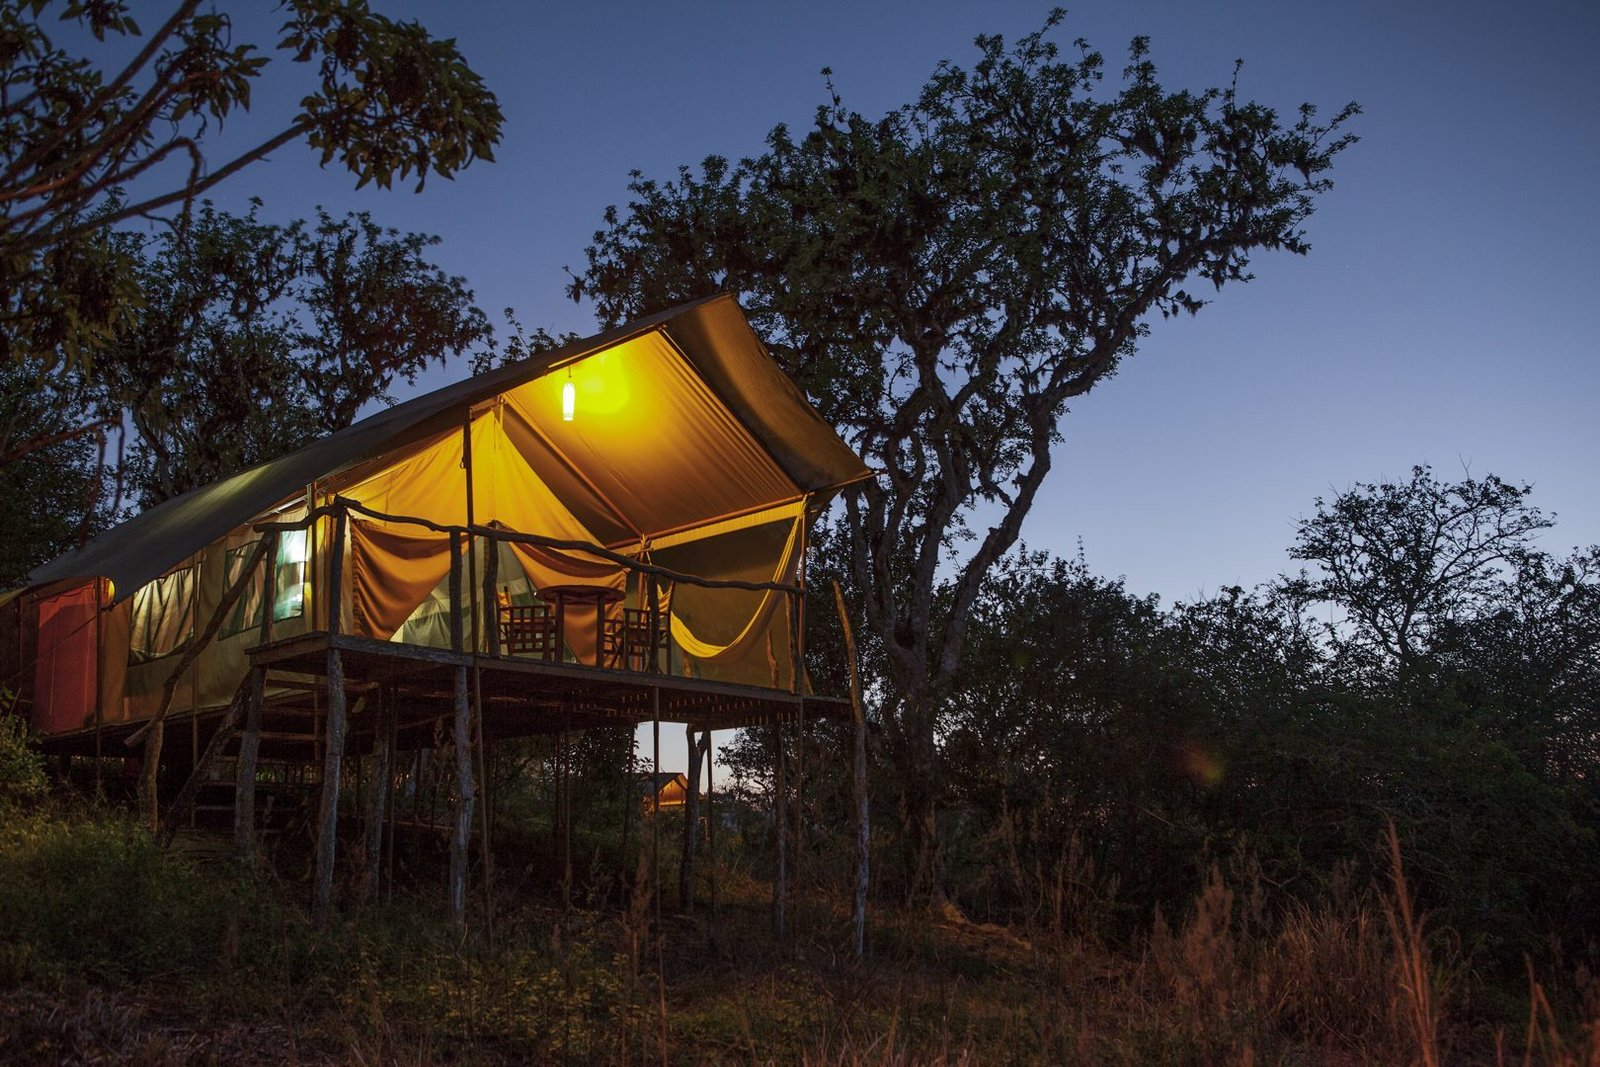 Exterior and Tent Building Type Galapagos Safari Camp on Galapagos Islands, Ecuador  Photo 9 of 12 in 12 Epic Hotels That Take Glamping to the Next Level from Galapagos Safari Camp